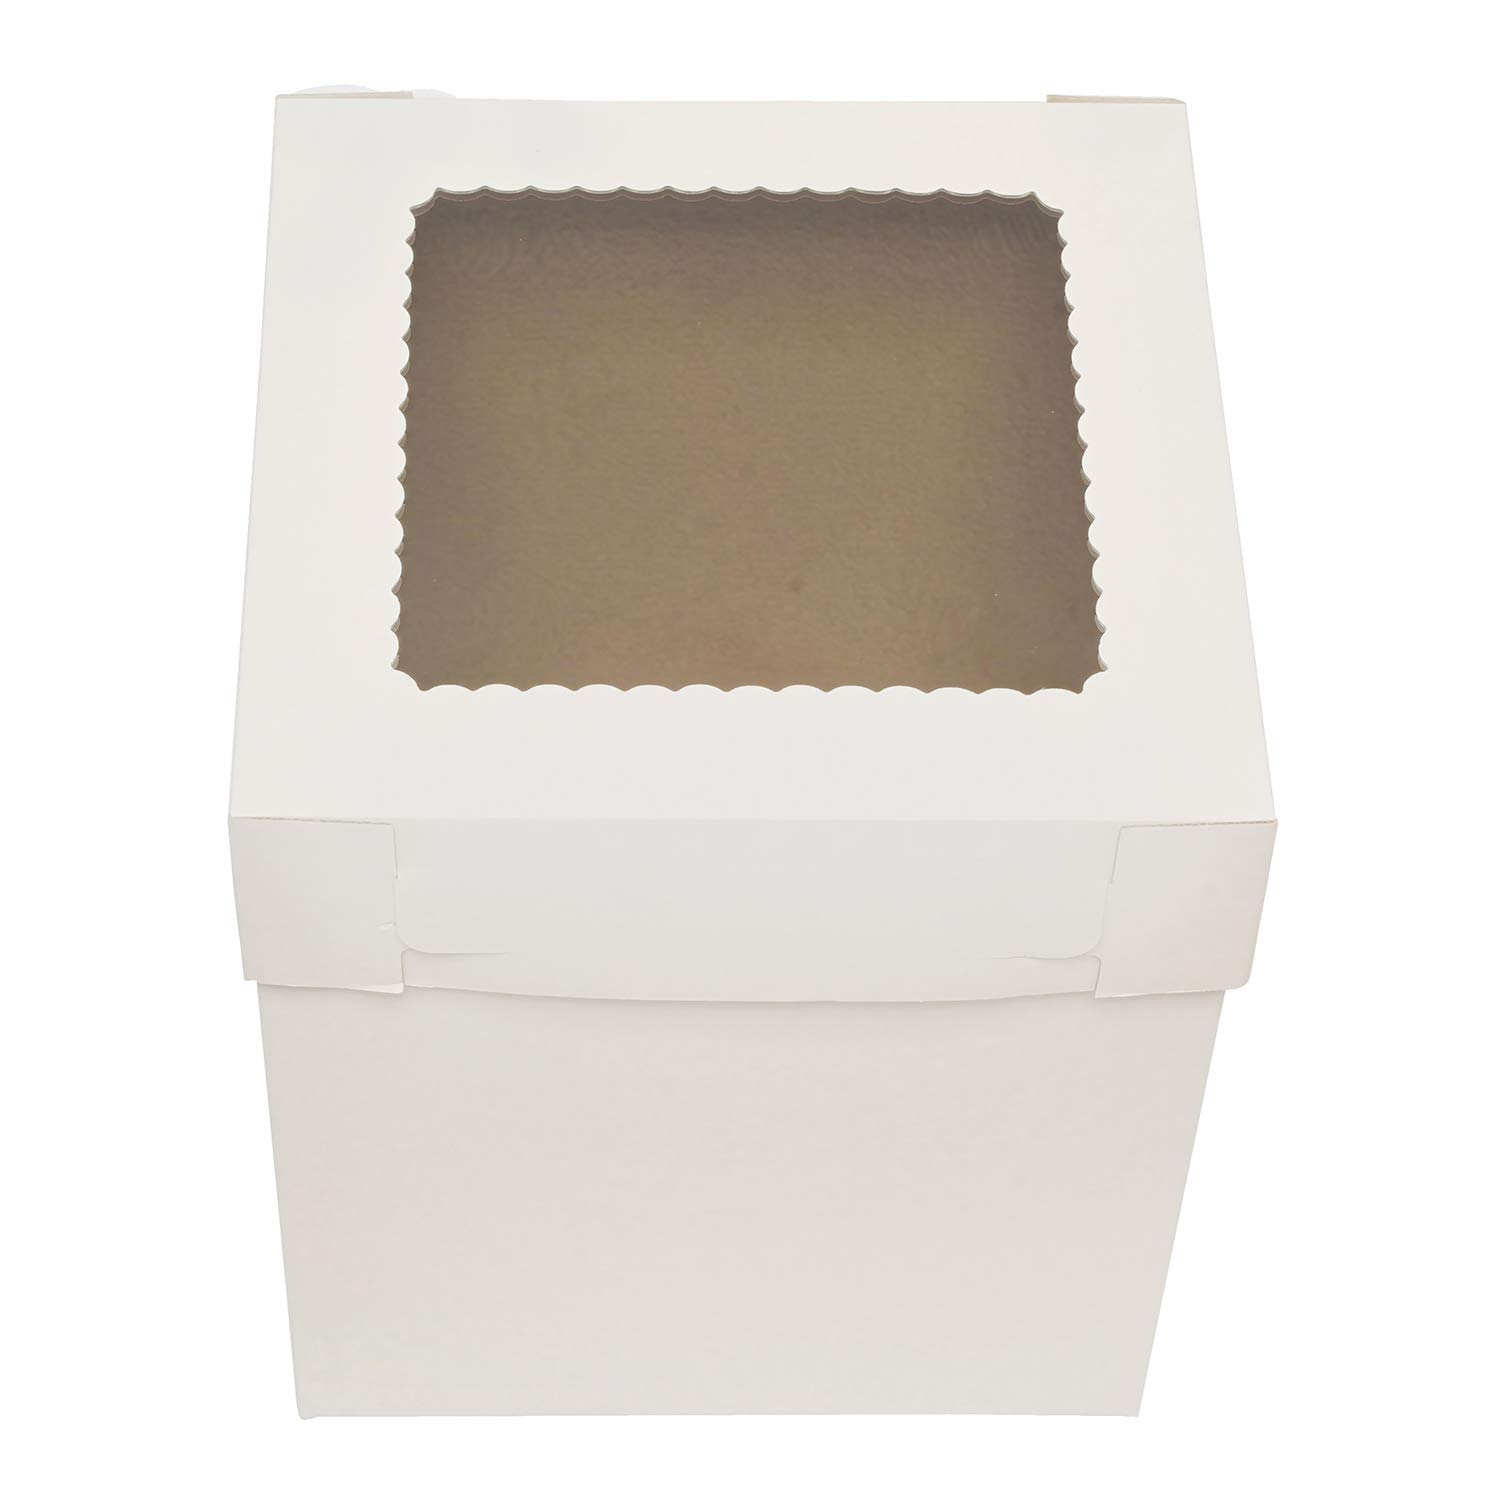 SpecialT Cake Boxes with Window 25pk 8'' x 8'' x 8'' Inch White Bakery Boxes, Disposable Cake Containers, Dessert Boxes by coolcha's (Image #5)